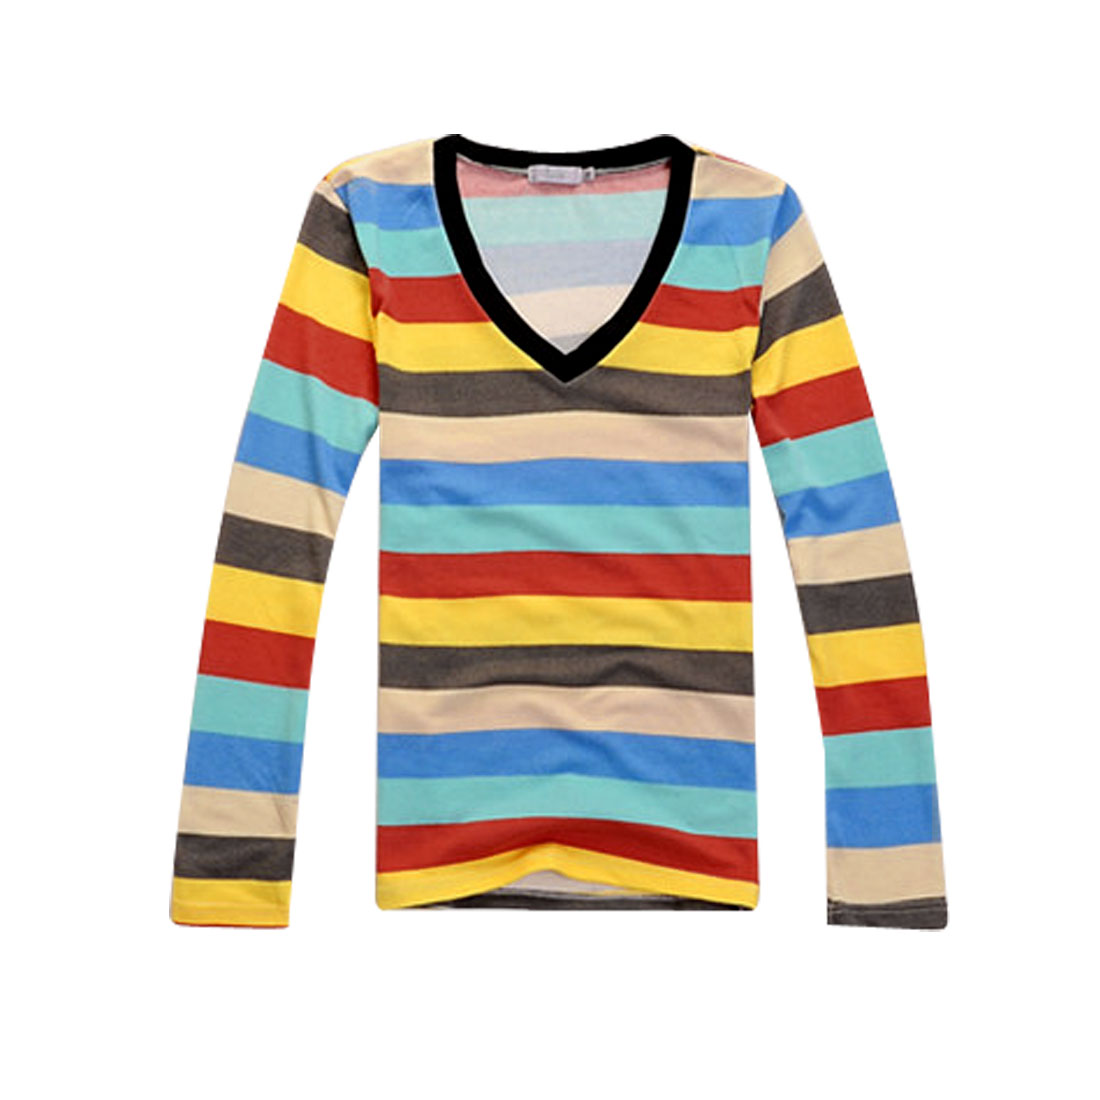 NEW Multi Color Stripes V Neck Pullover Long Sleeve Shirt Tops For Men S